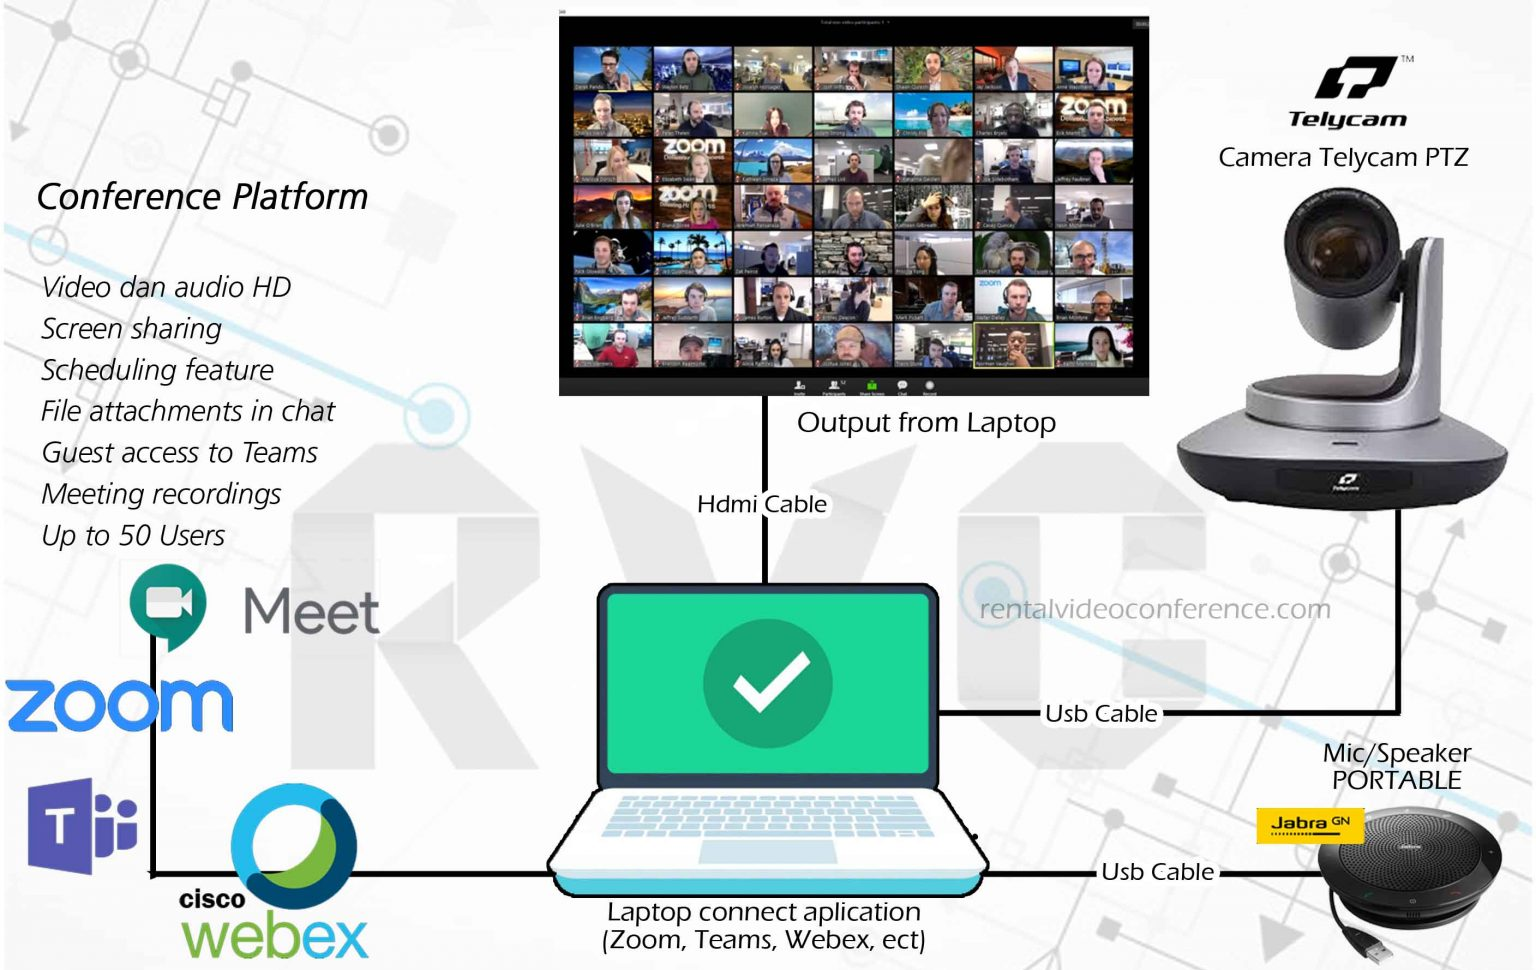 Harga Rental Video Conference Setia Budi